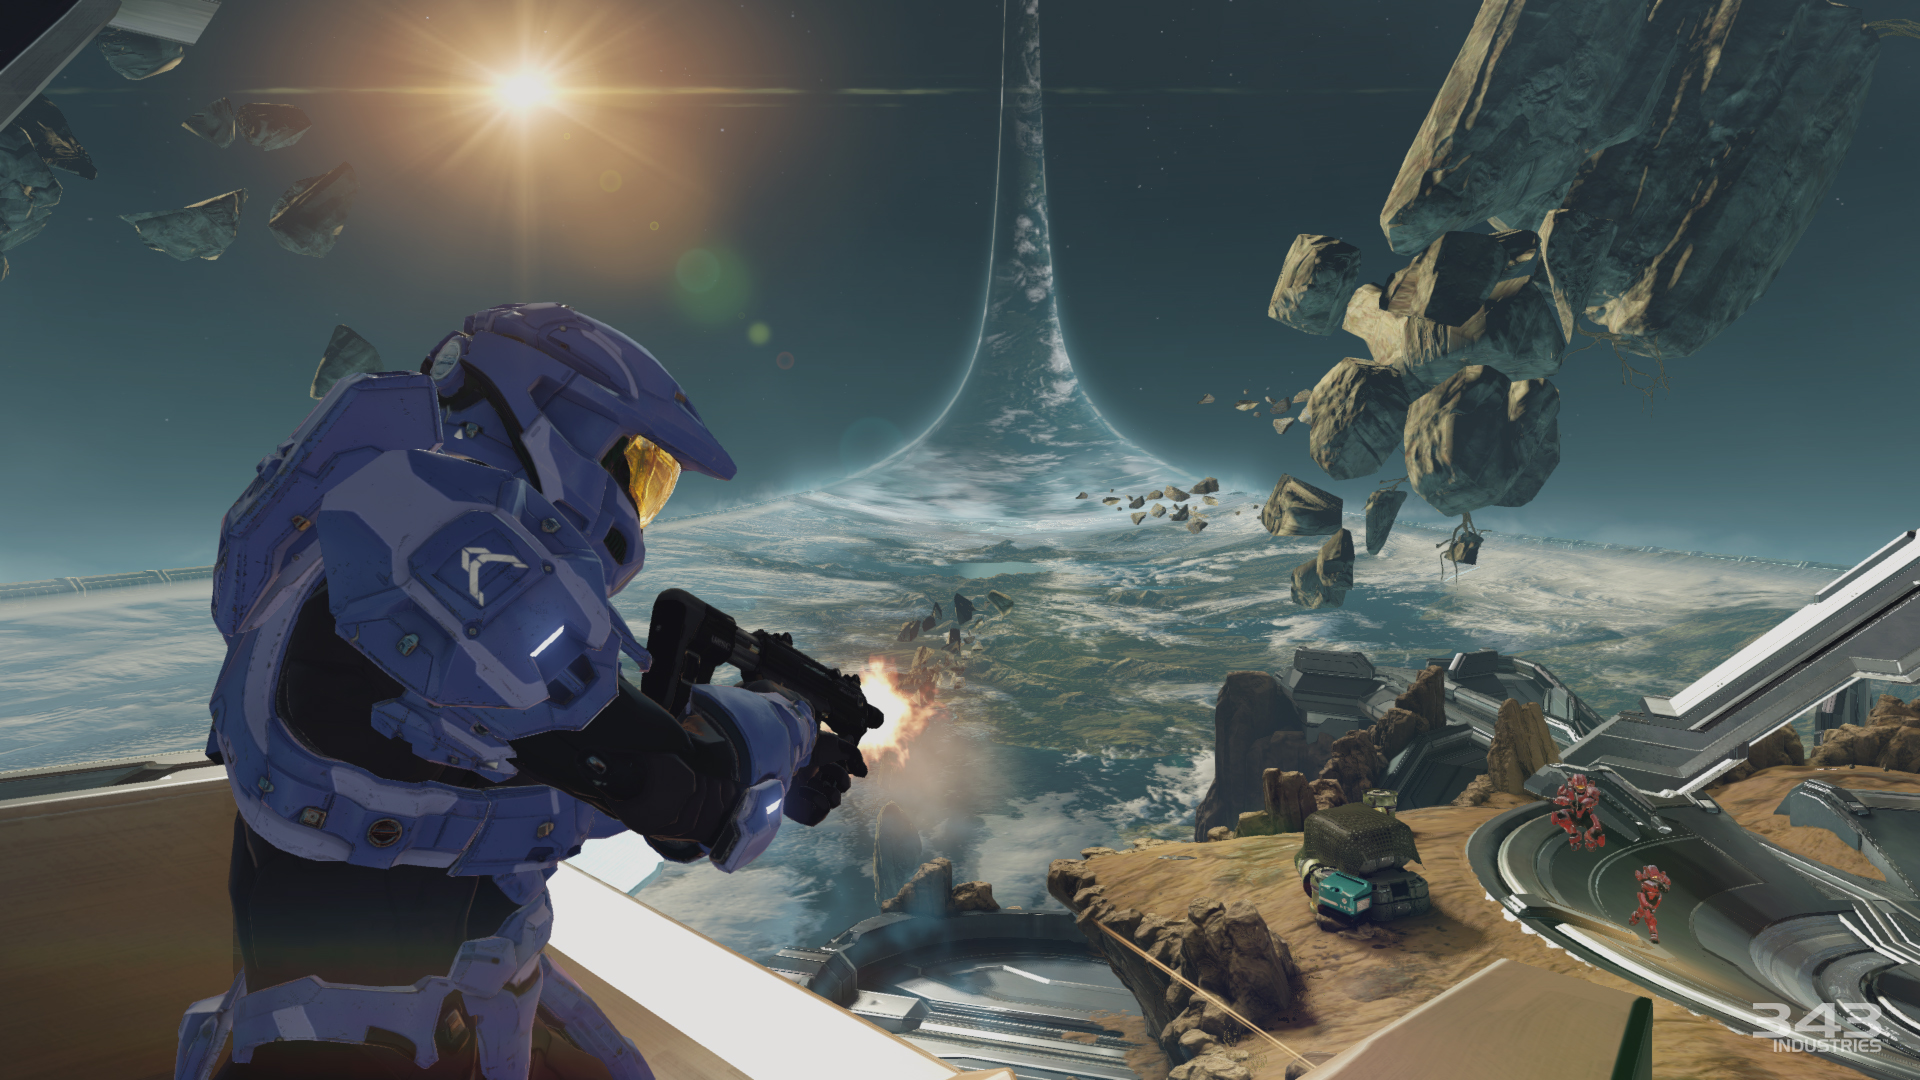 Sep 16, 2014 Halo: The Master Chief Collection preview - anniversary